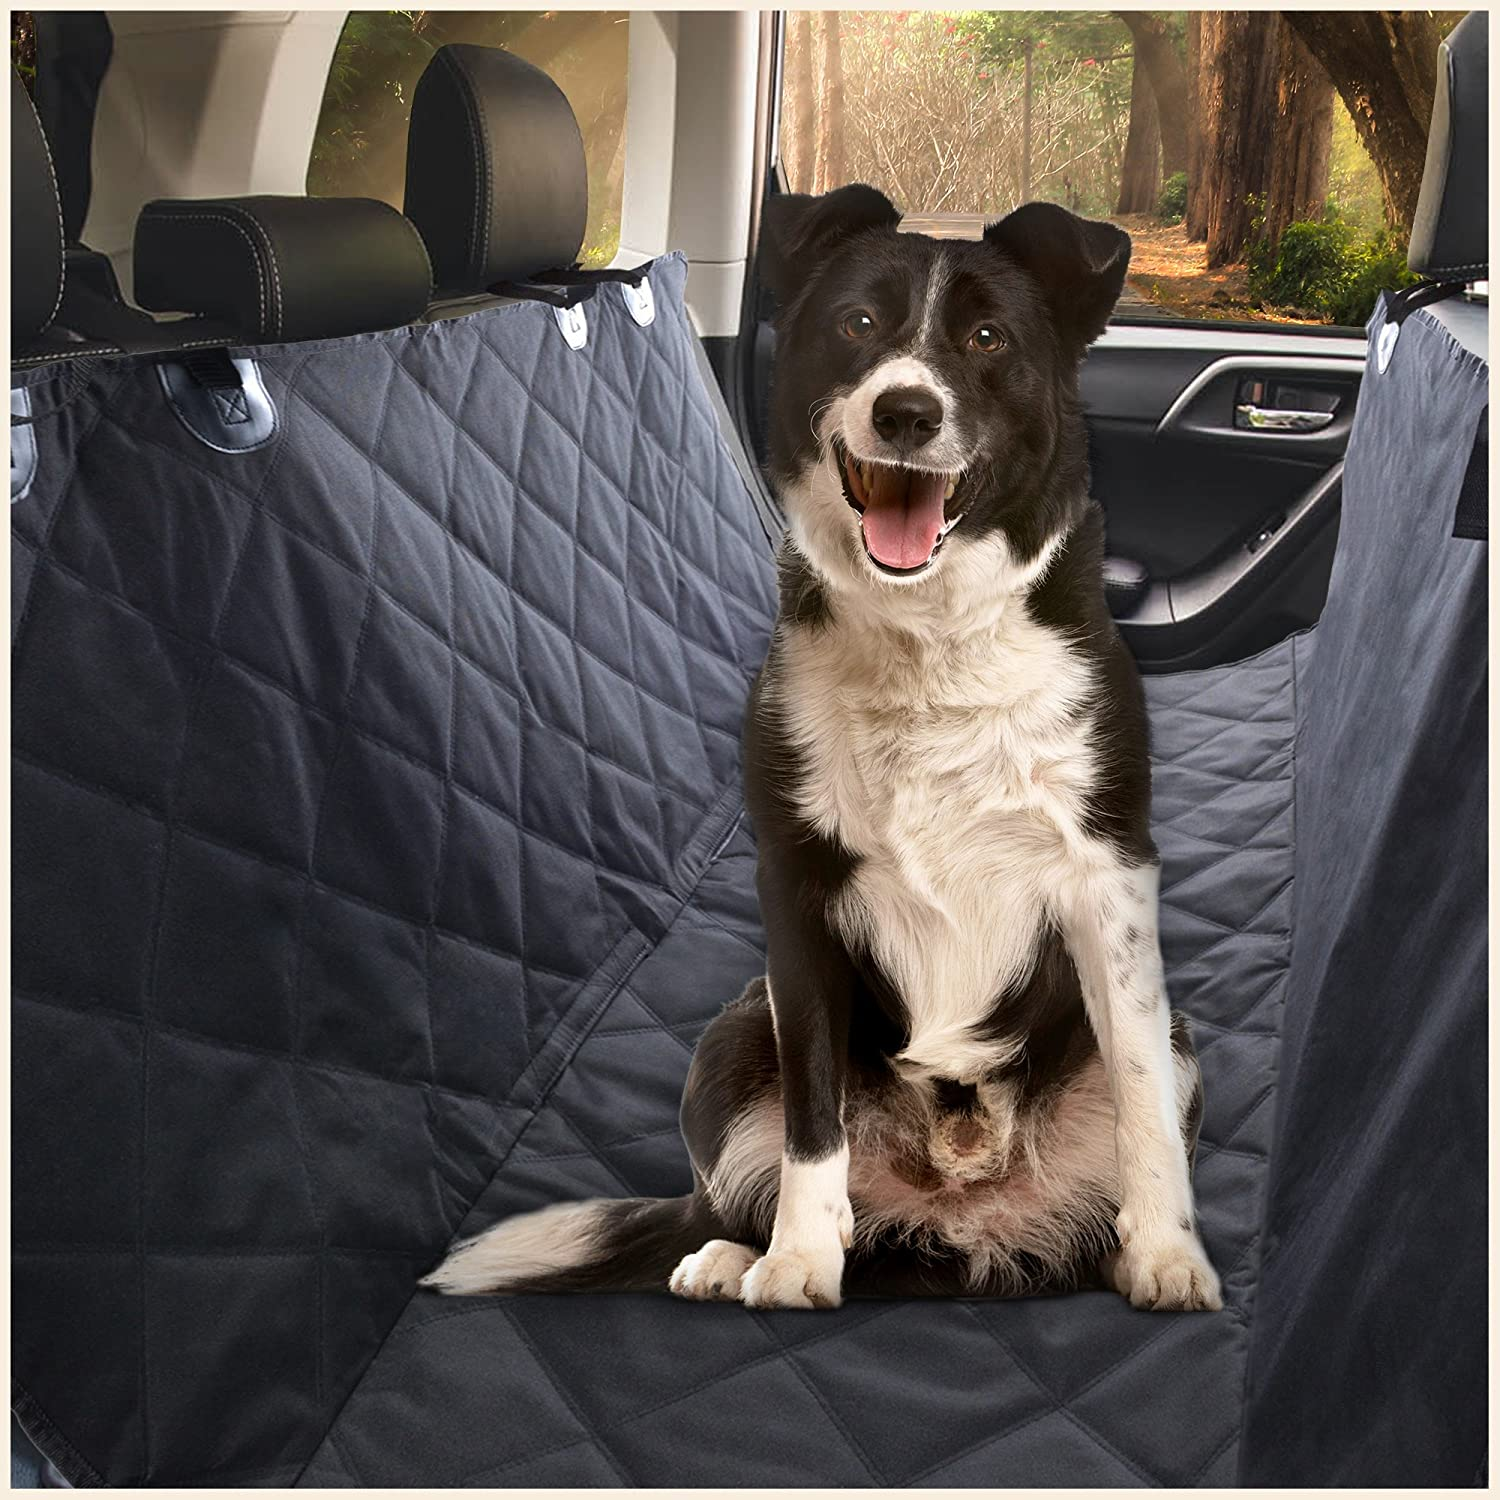 E Ess Craft Dog Hammock – Waterproof Pet Car Rear Back Seat Cover, Hammock and Standard, Quilted, Triple Layered with Seat Belt Slots, Black